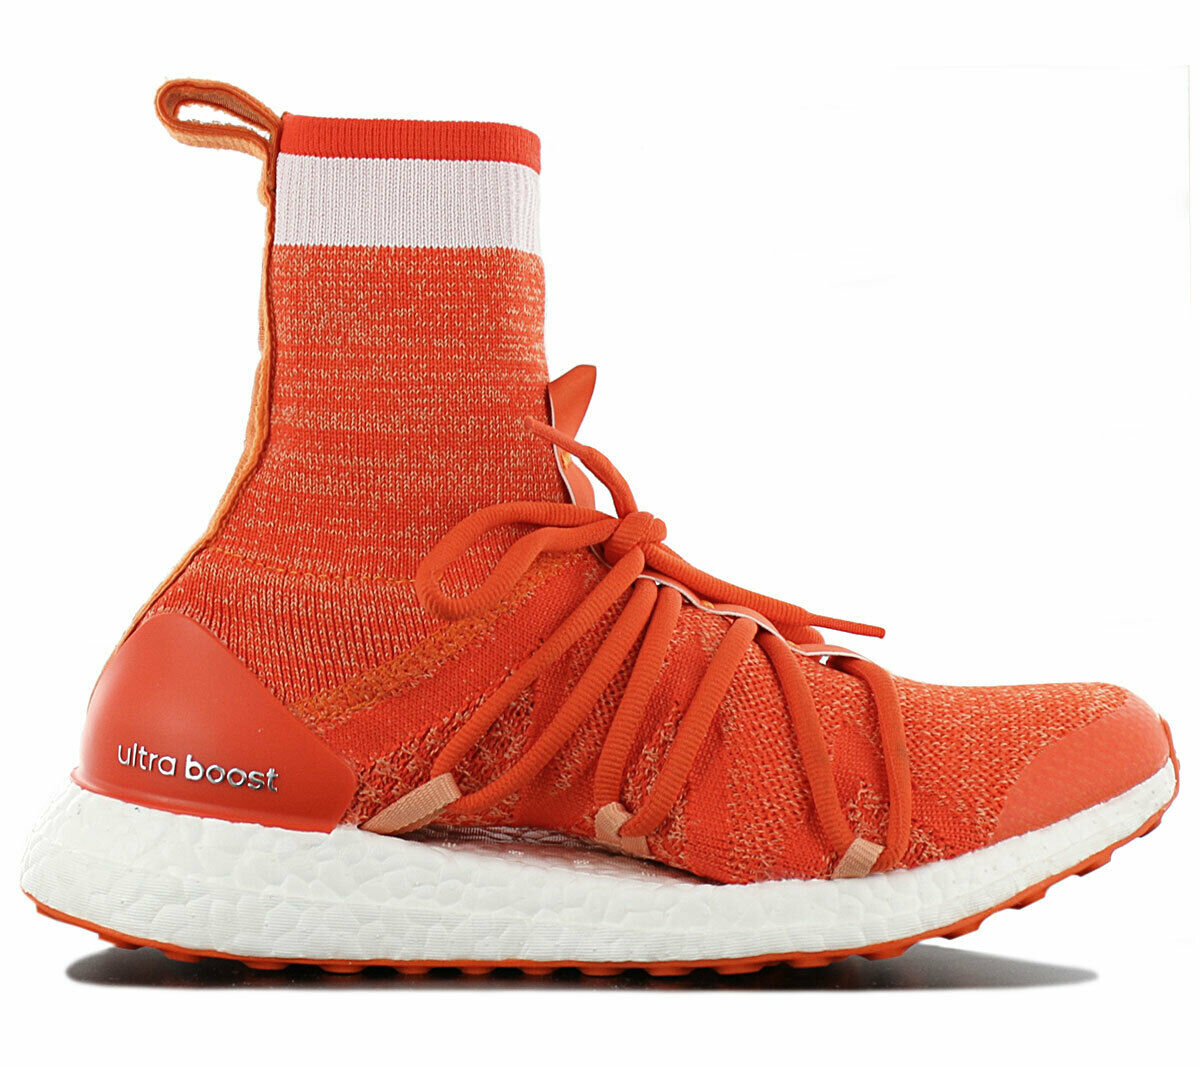 Adidas by Stella Mccartney Ultra Boost x mid Sneaker Cm7736 shoes Trainers